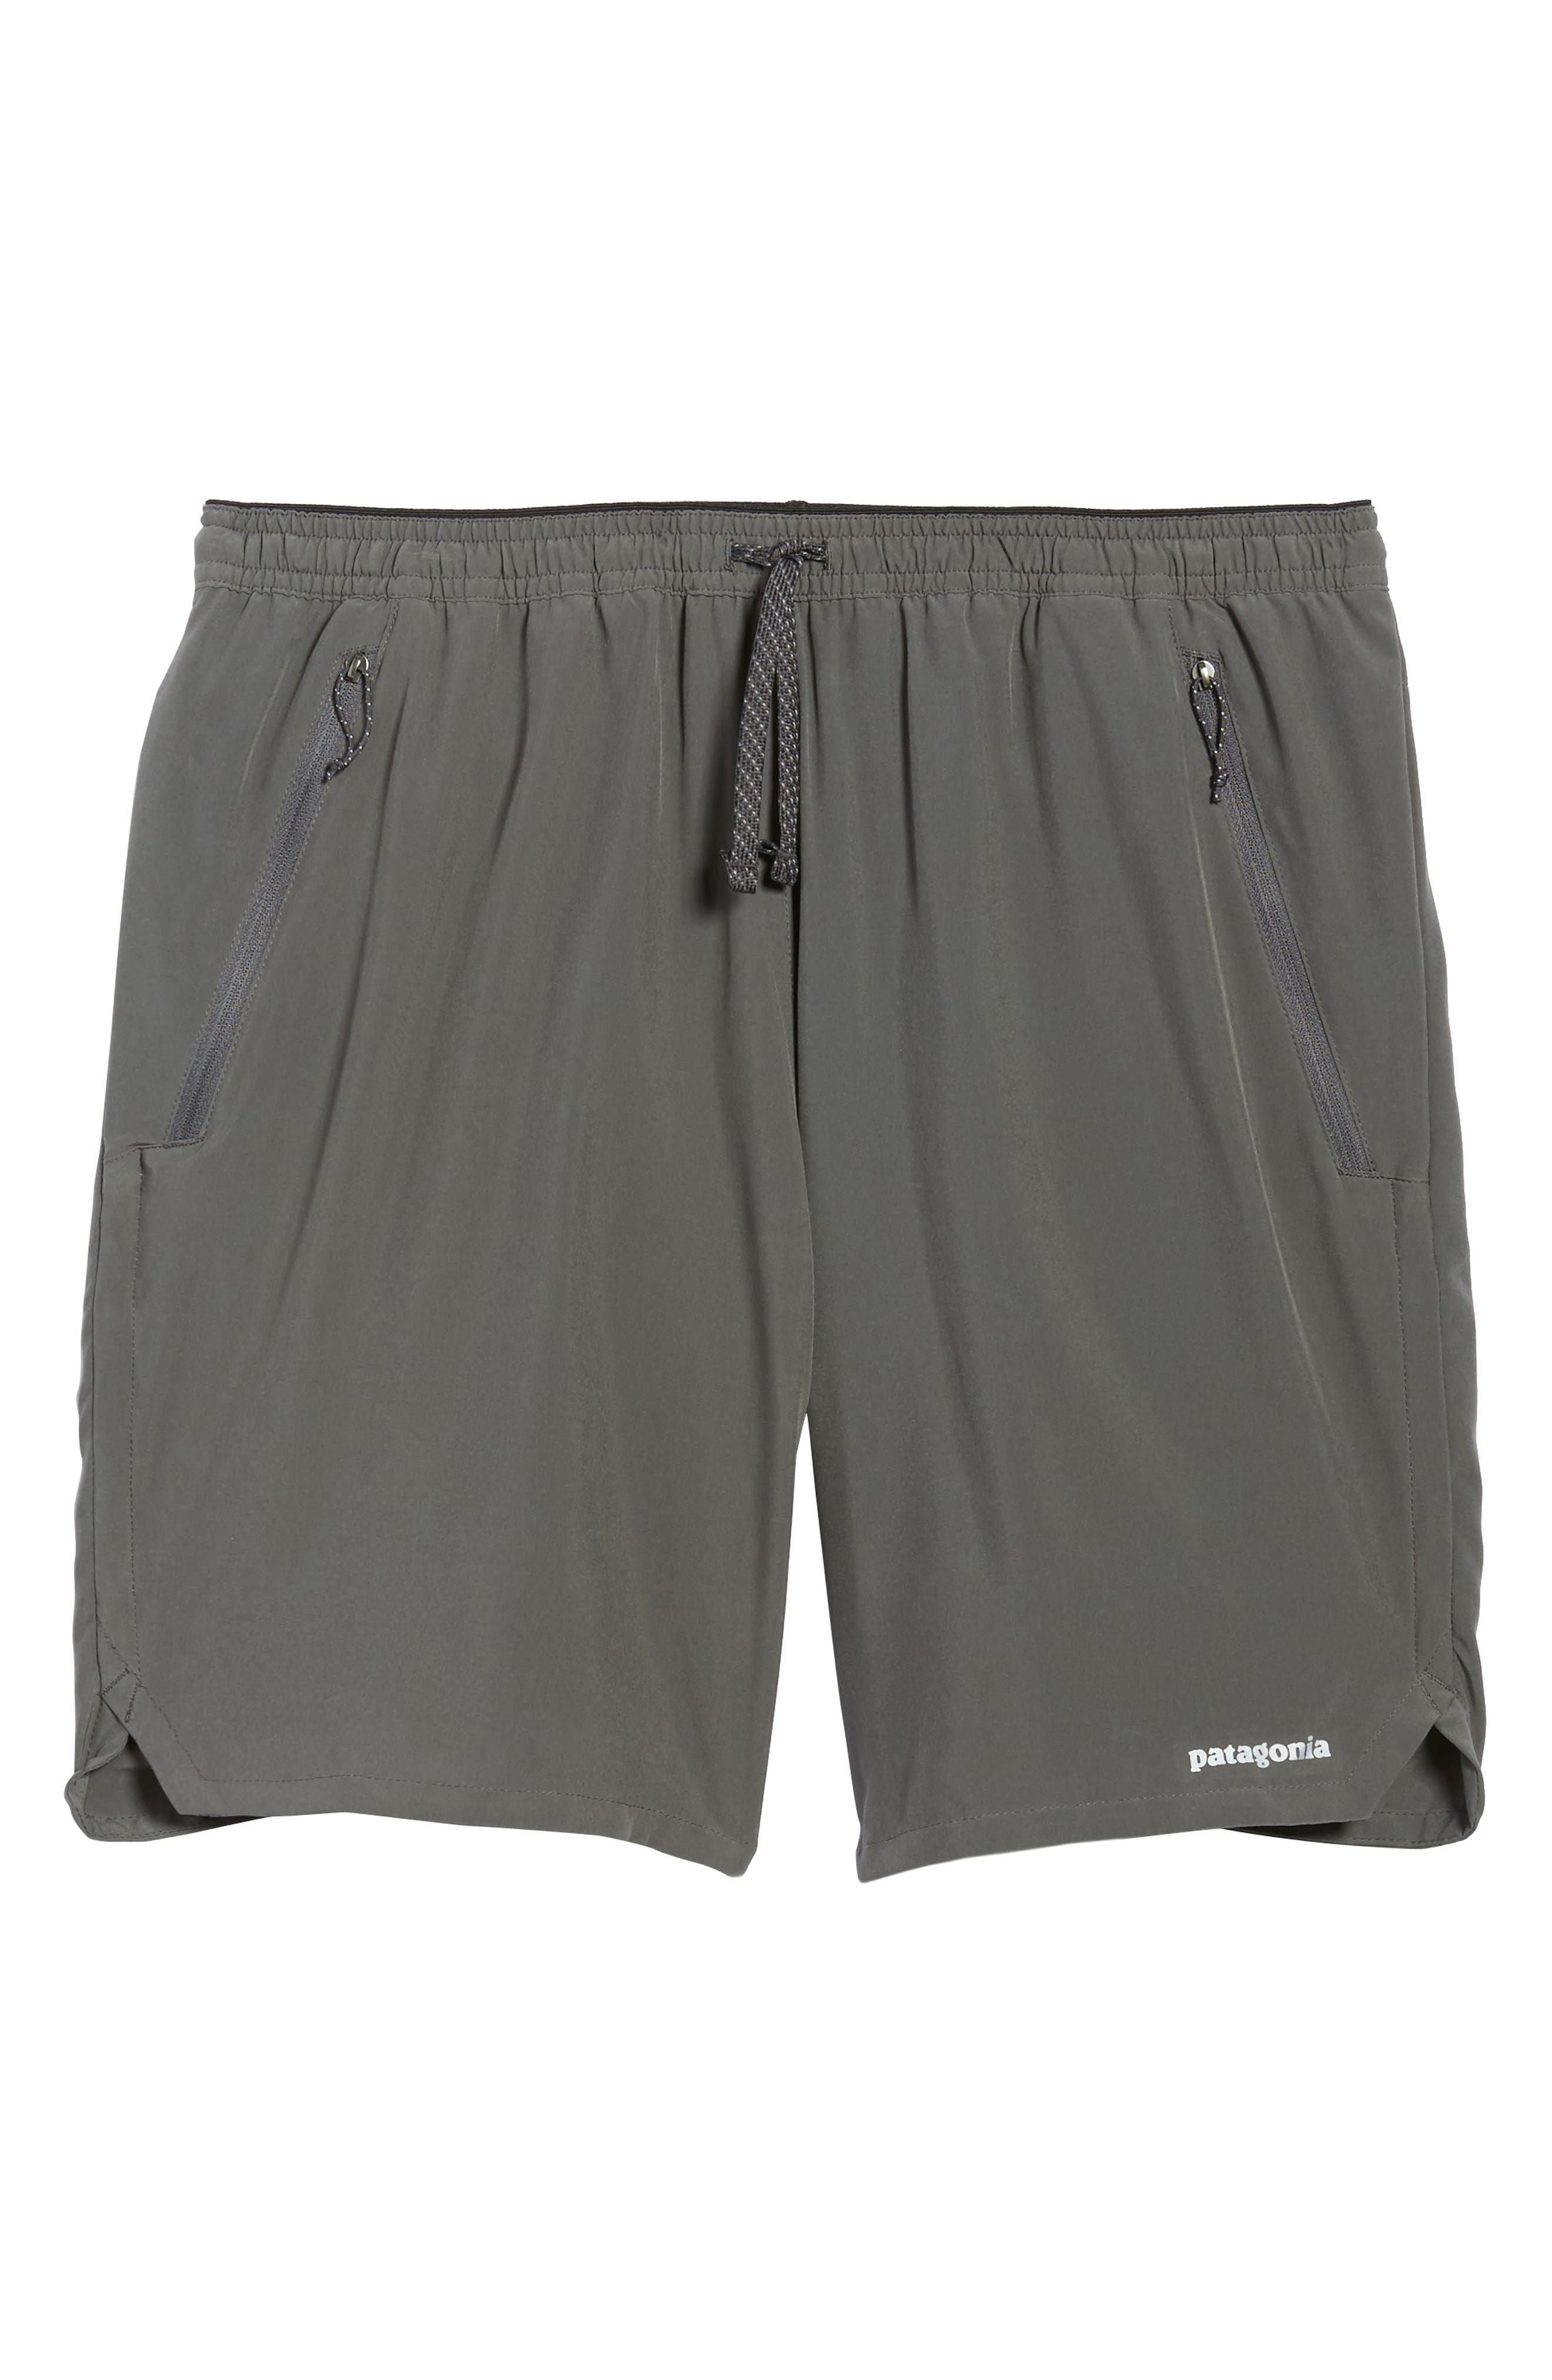 Nine Trails Hiking Shorts,                             Alternate thumbnail 22, color,